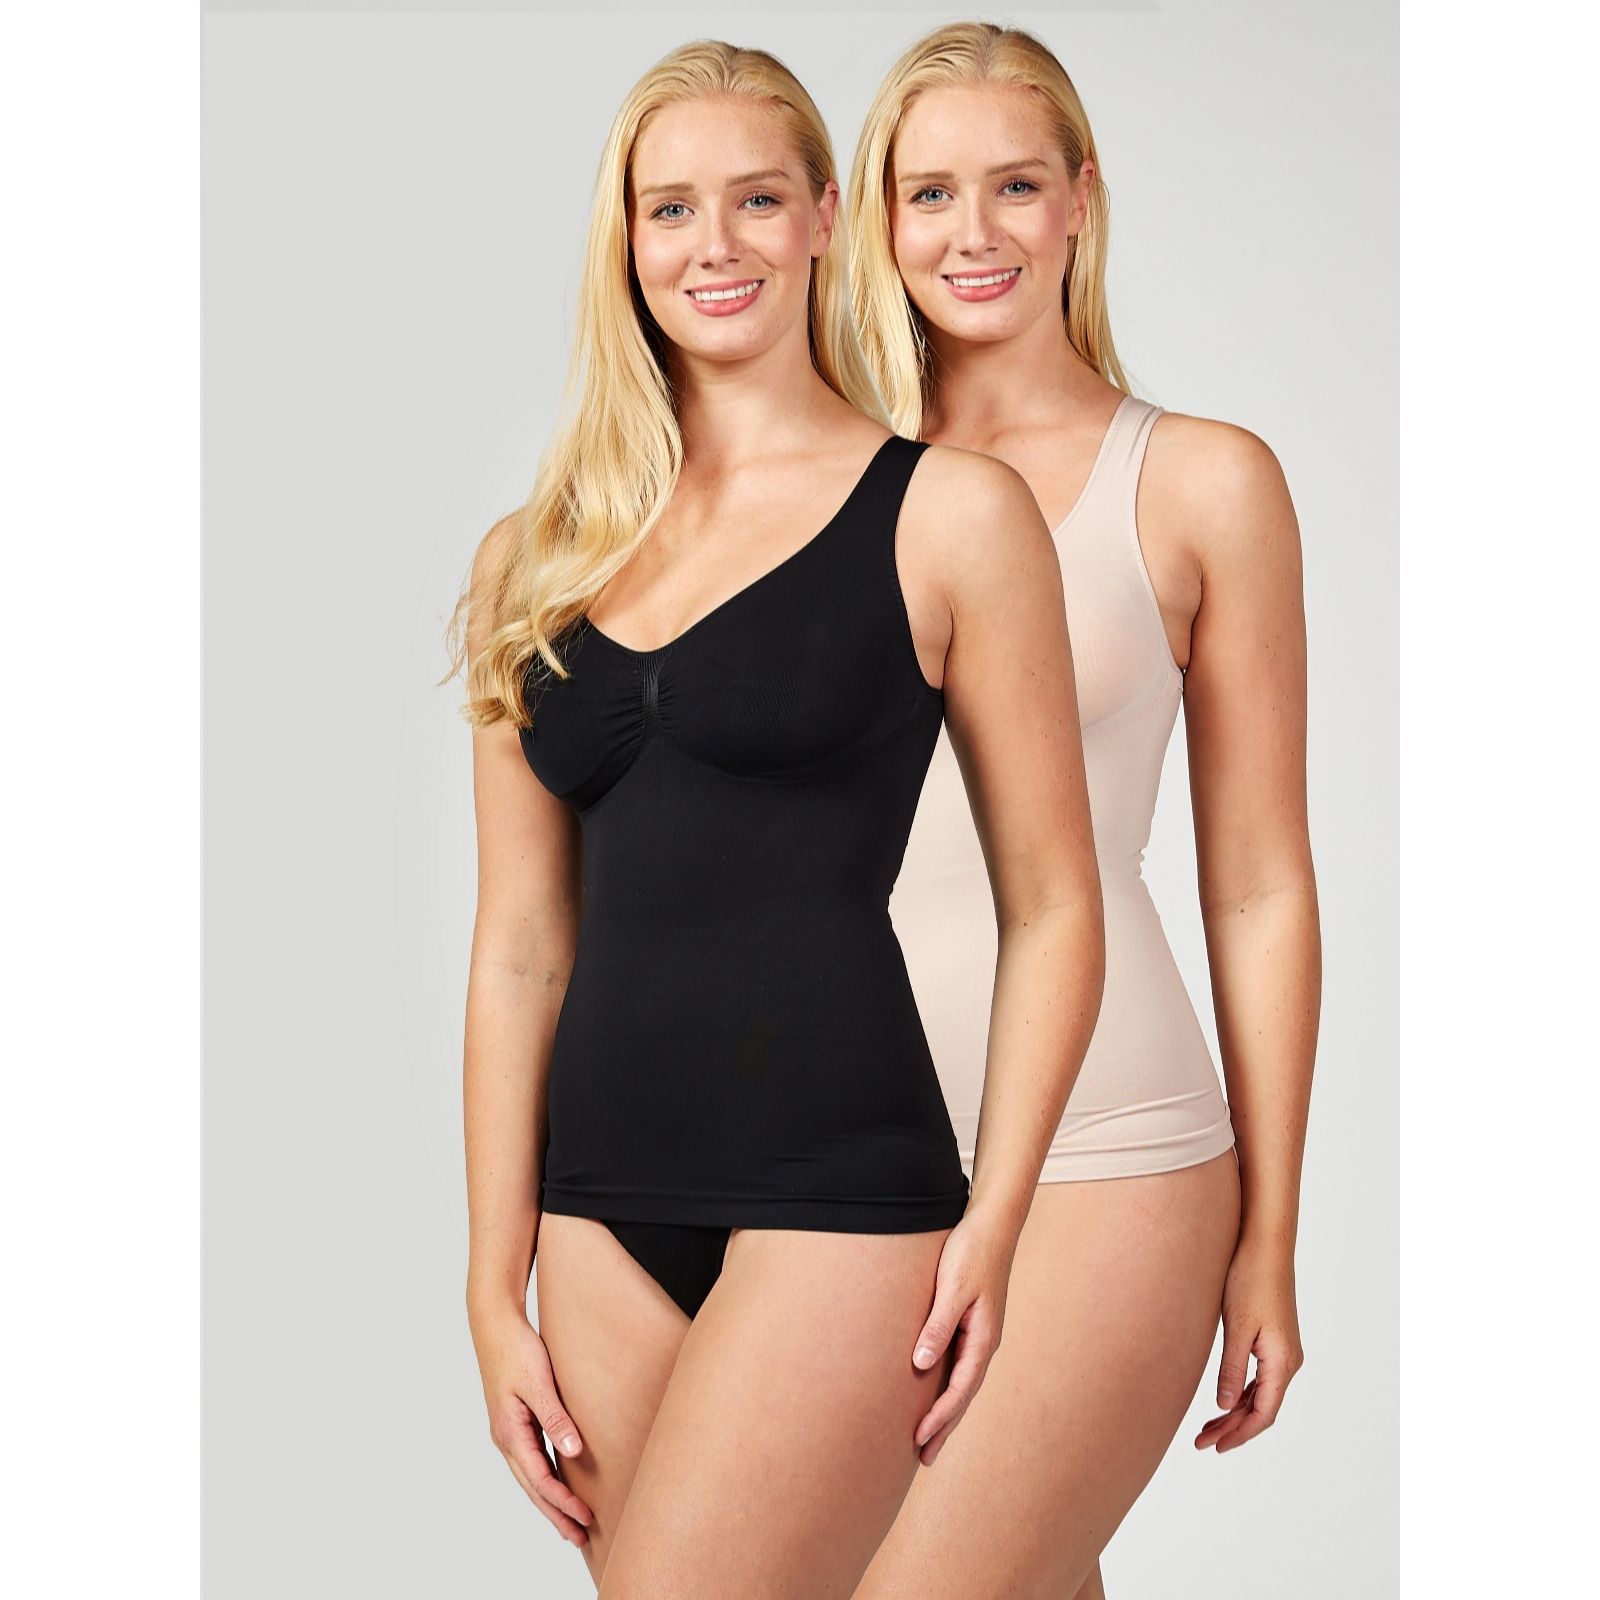 3513ff06ea3eb Vercella Vita Medium Control Essentials Cami Pack of 2 - QVC UK